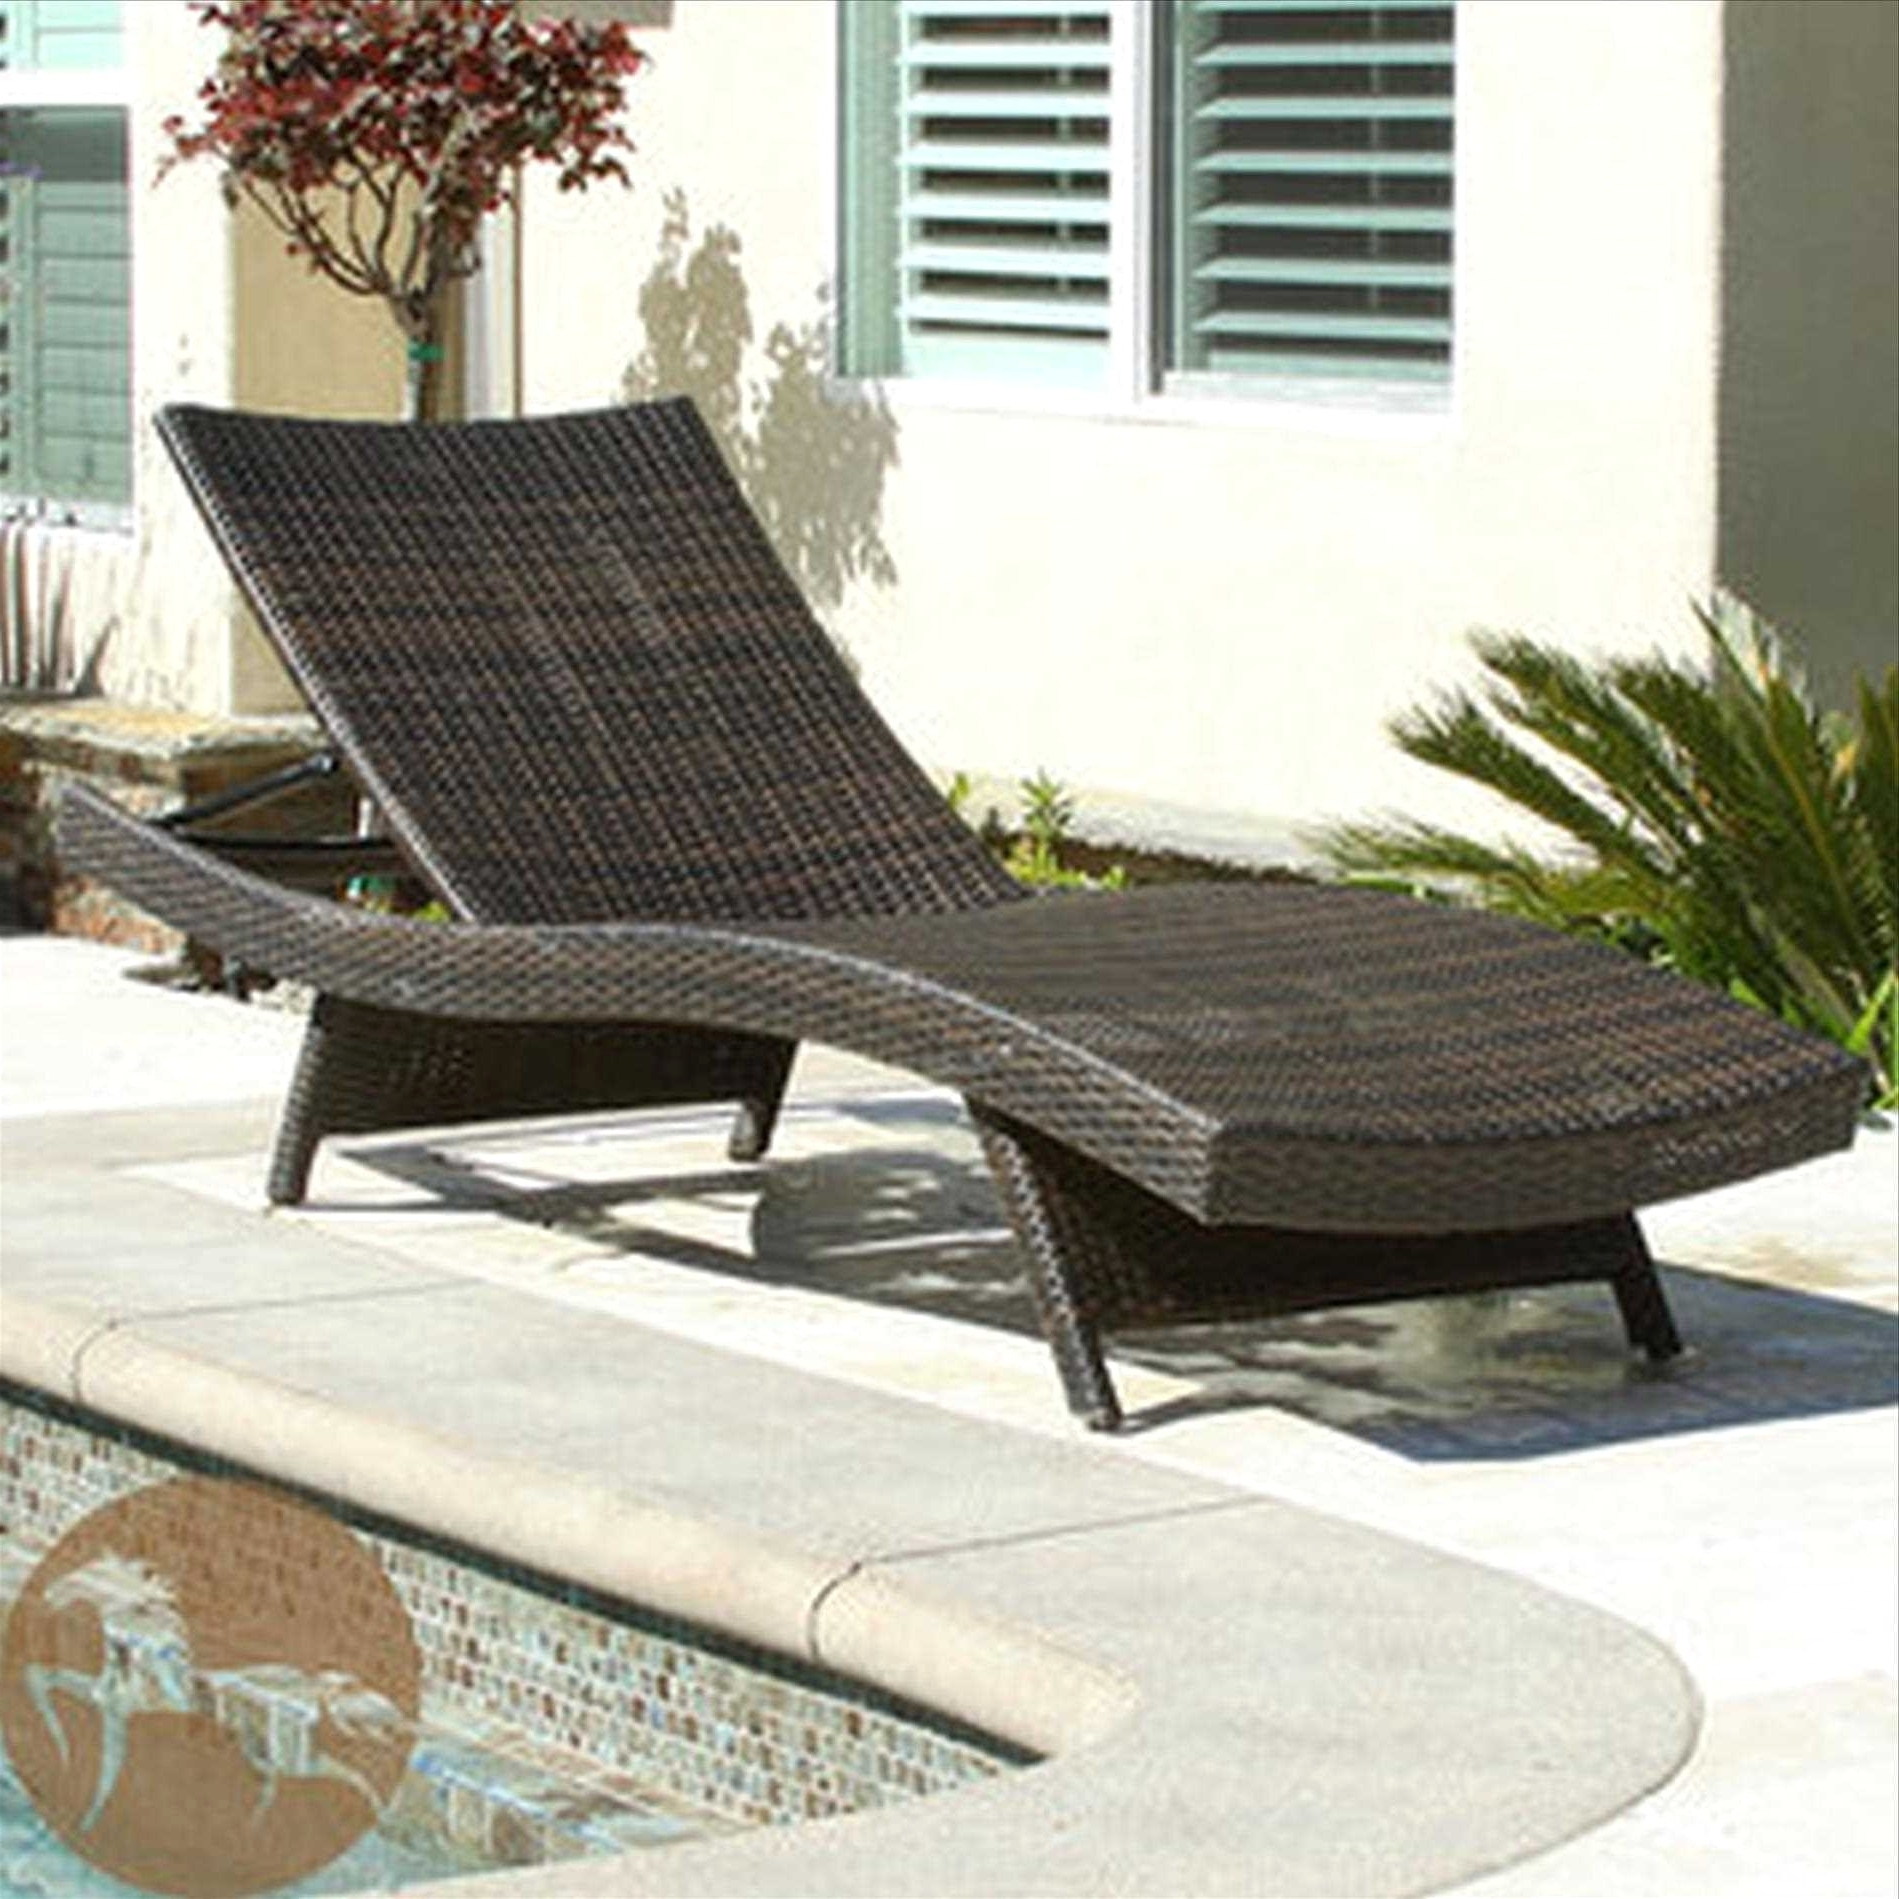 Favorite Sears Chaise Lounge Chairs Patio Furniture • Lounge Chairs Ideas With Chaise Lounge Chairs For Patio (View 9 of 15)